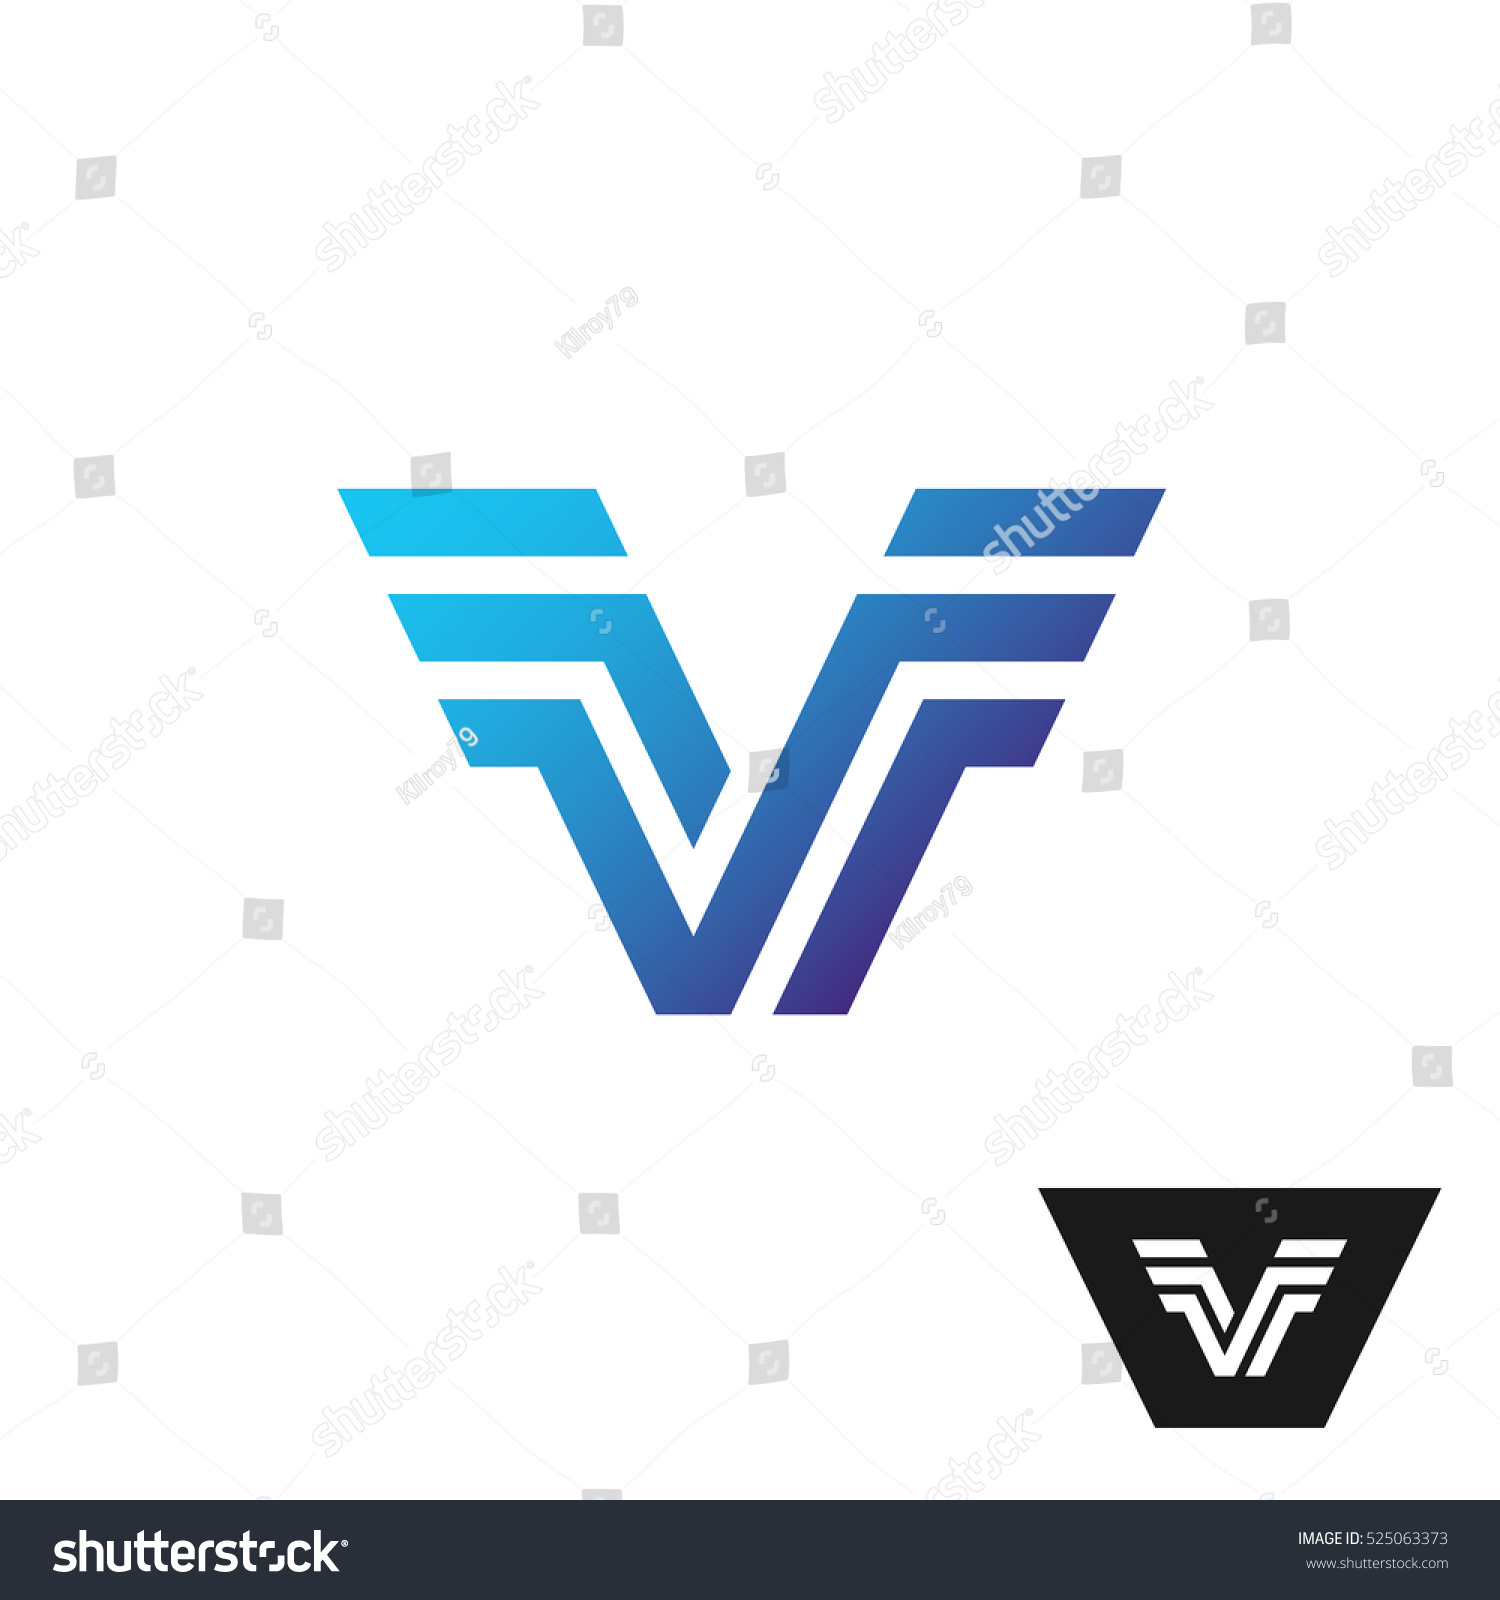 Letter v logo wings sides technical stock vector 525063373 letter v logo with wings at sides technical style parallel lines symbol buycottarizona